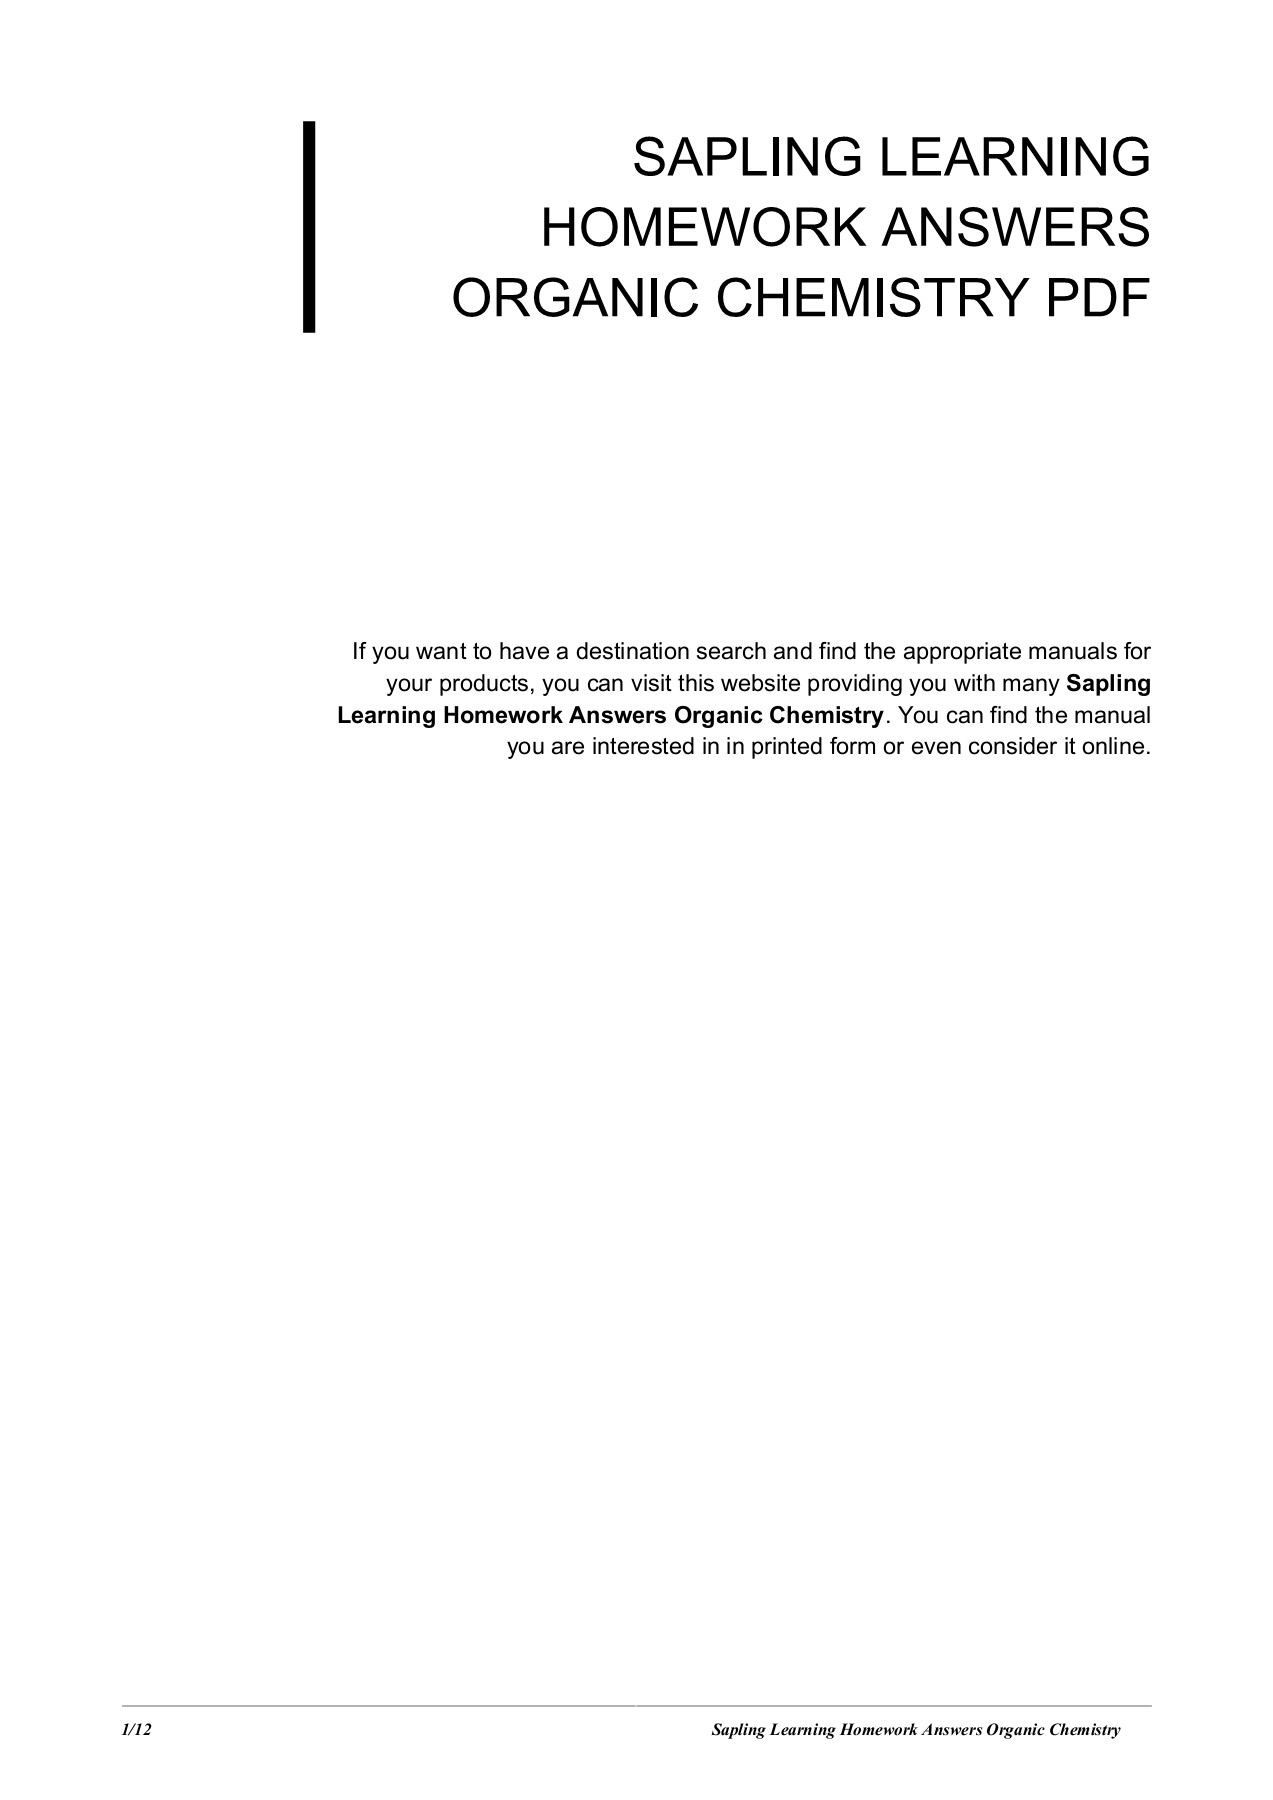 Sapling Learning Homework Answers Organic Chemistry Pages 1